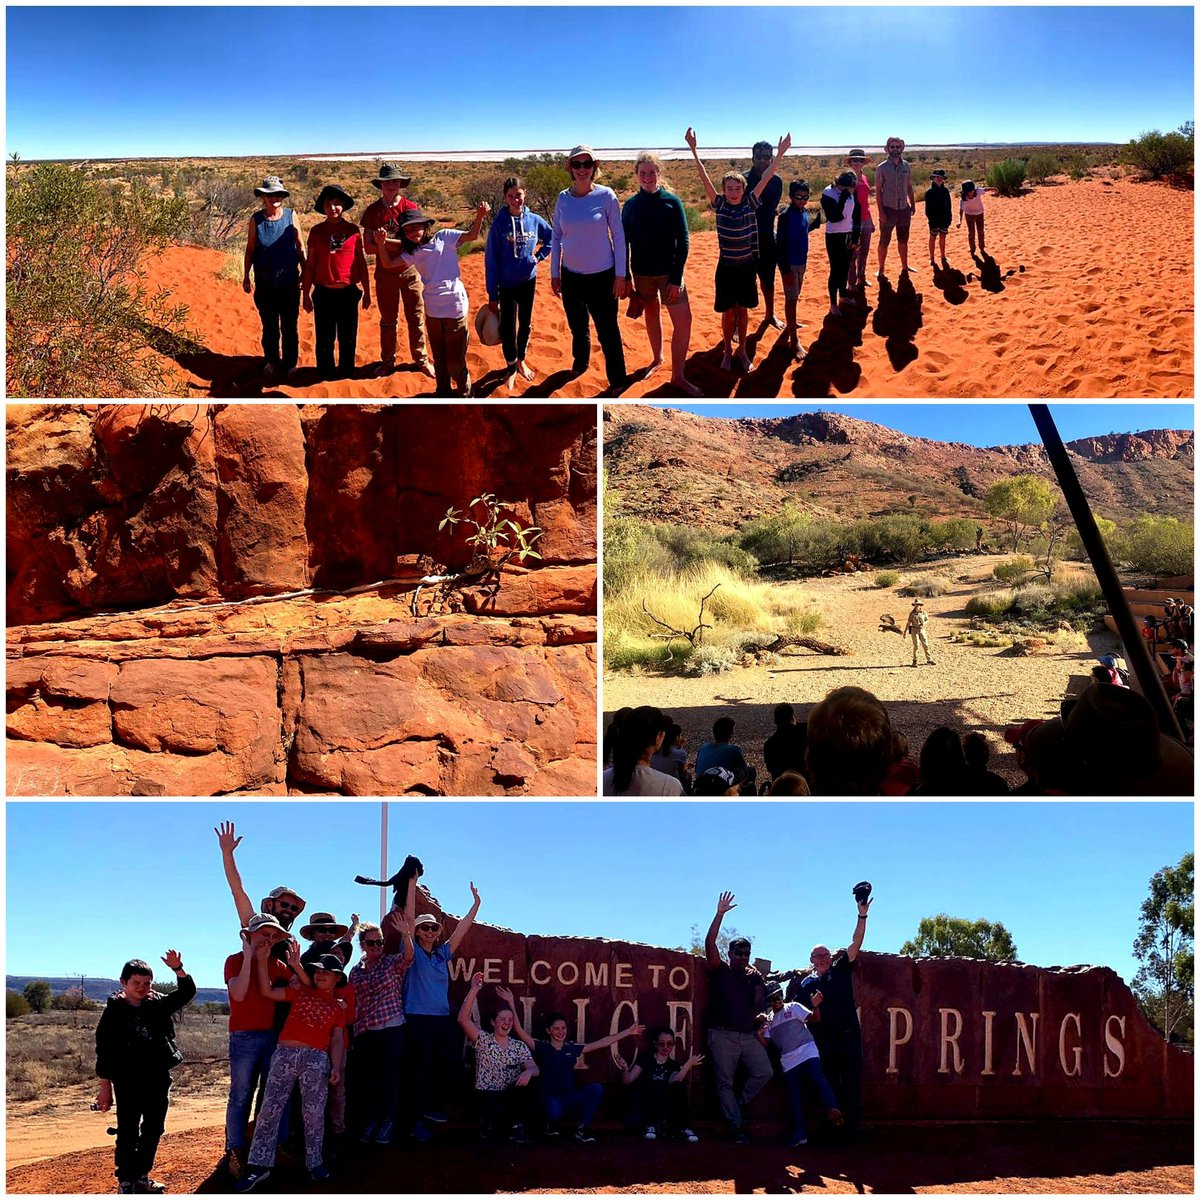 Our Adventure Club Trip to the Red Centre has been extremely enjoyable.  Thus far participants have seen Alice Springs, caught a Birds of Prey show, explored the gorgeous Kings Canyon & the red sand at Fooluru.